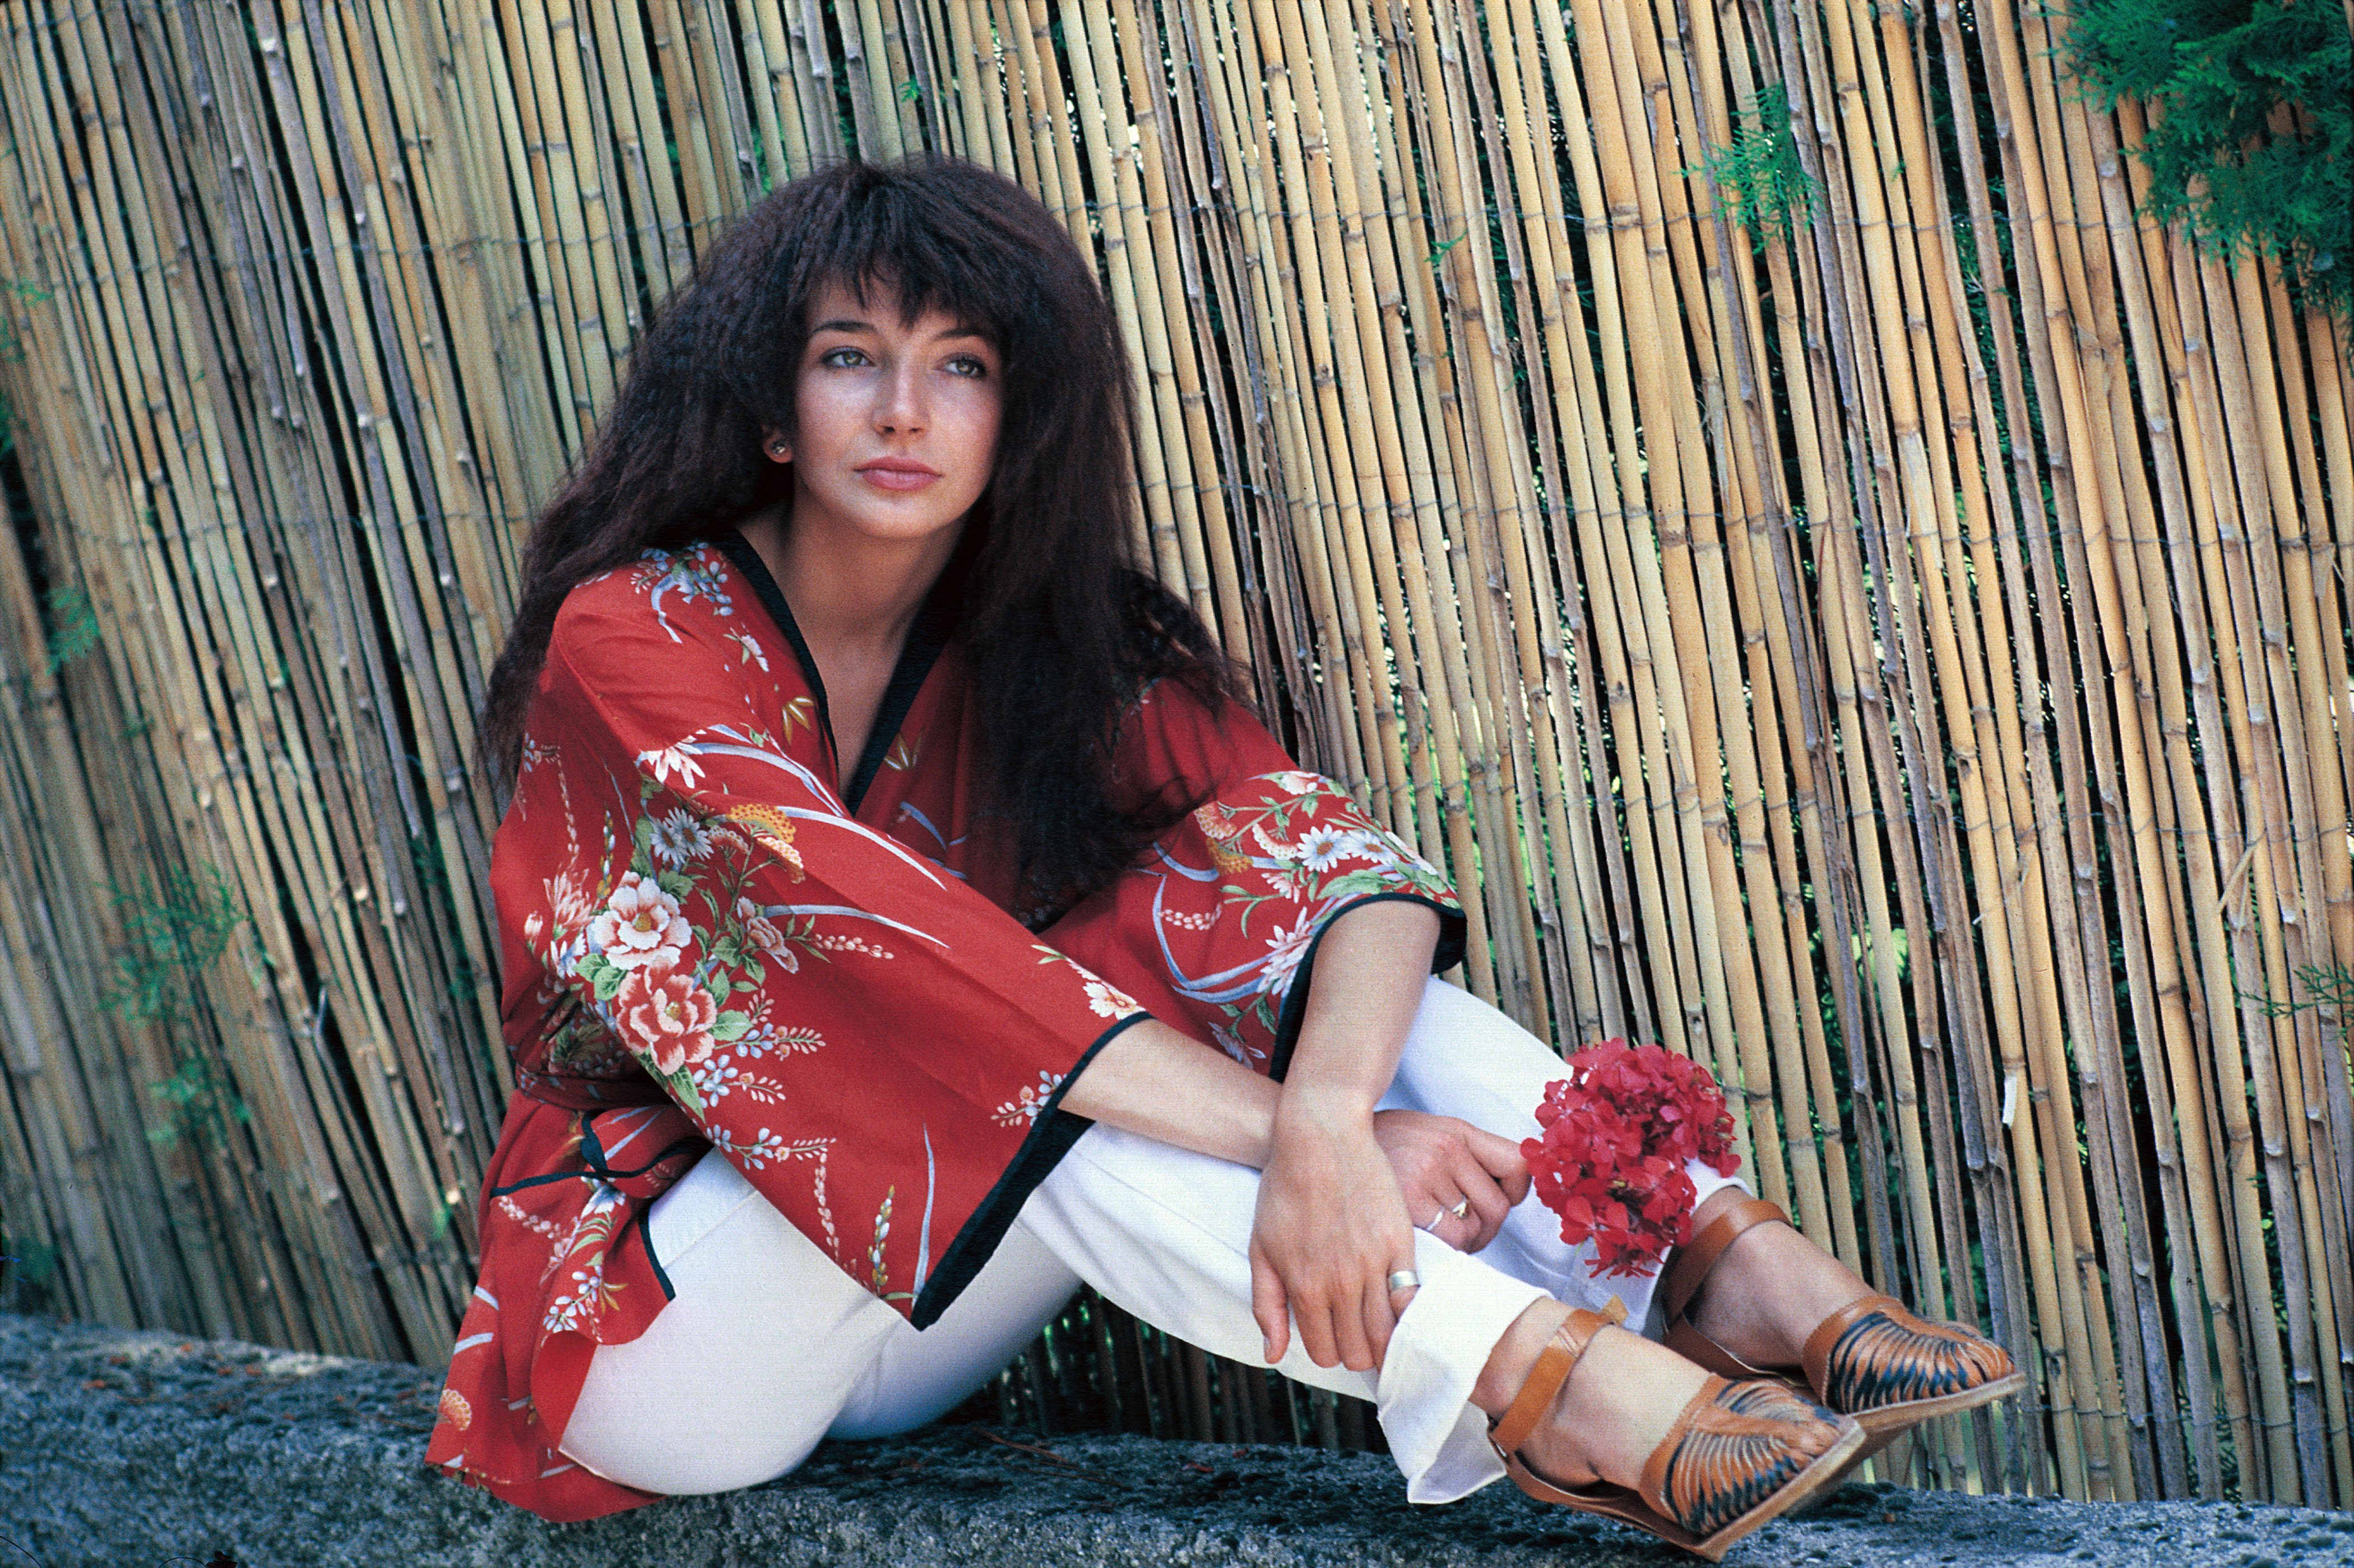 Kate Bush poses for a shoot in Italy in 1978 | Photo: Getty Images